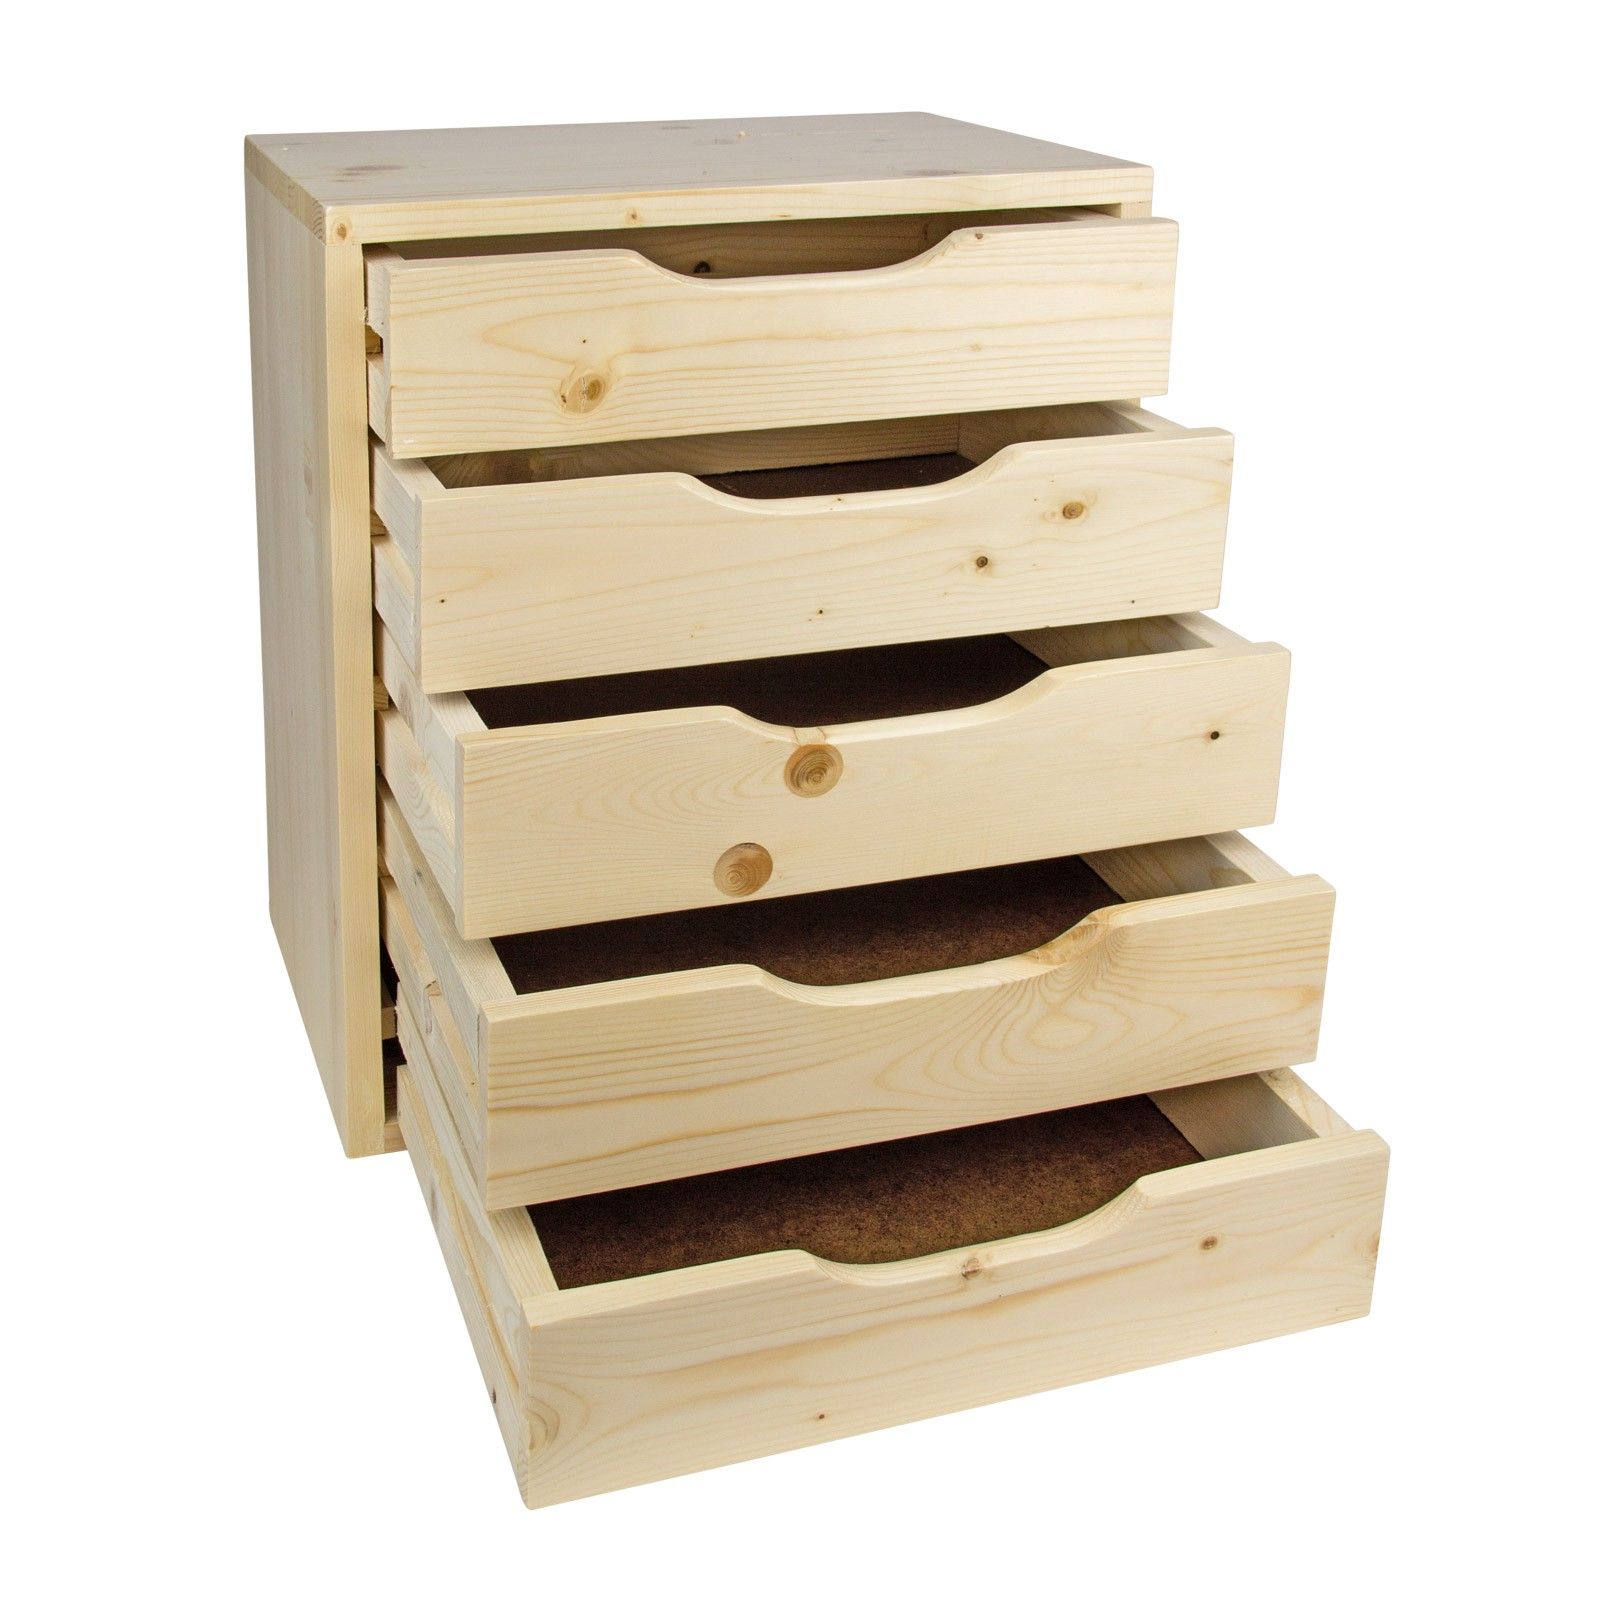 dema holz schubladenbox sb 3 4 5 6 schubladen. Black Bedroom Furniture Sets. Home Design Ideas